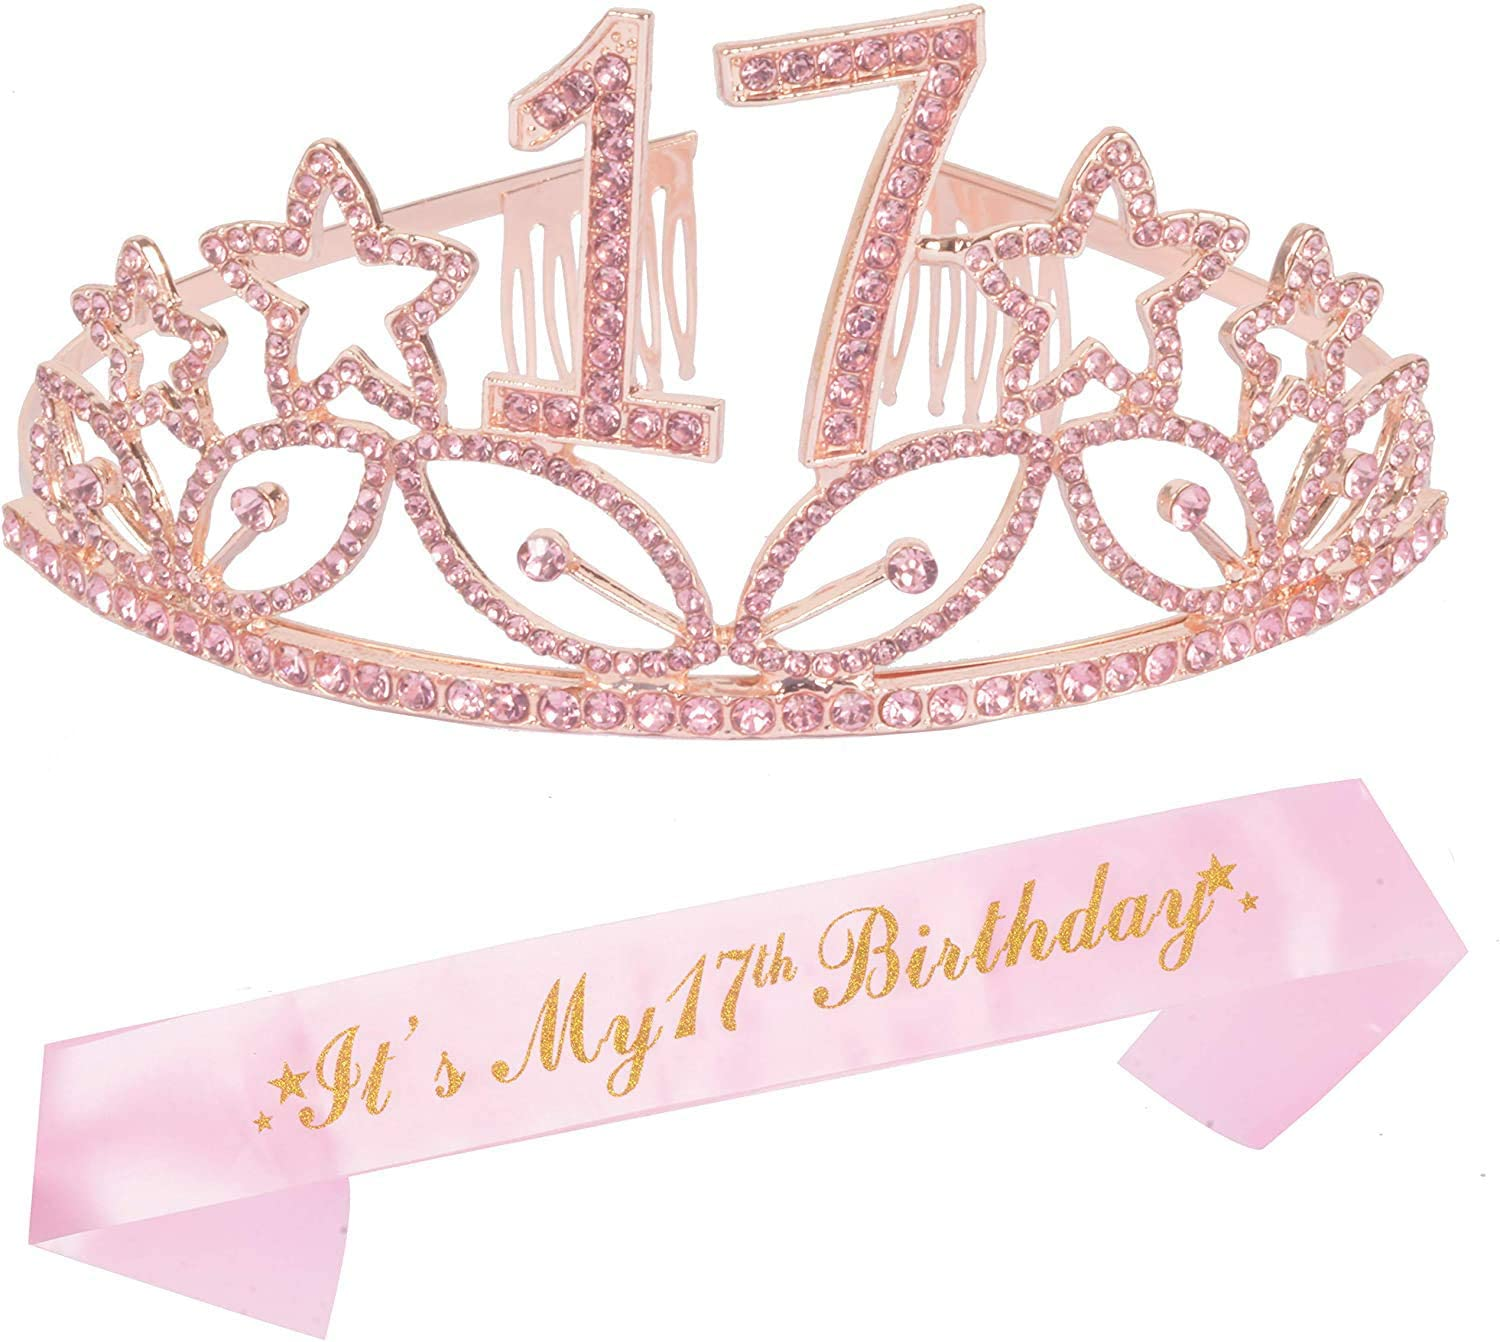 17th Birthday Gifts for Girl, 17th Birthday Tiara and Sash, Happy 17th Birthday Party Supplies, Pink Satin Sash and Crystal Tiara Birthday Crown for 17th Birthday Party Supplies and Decorations